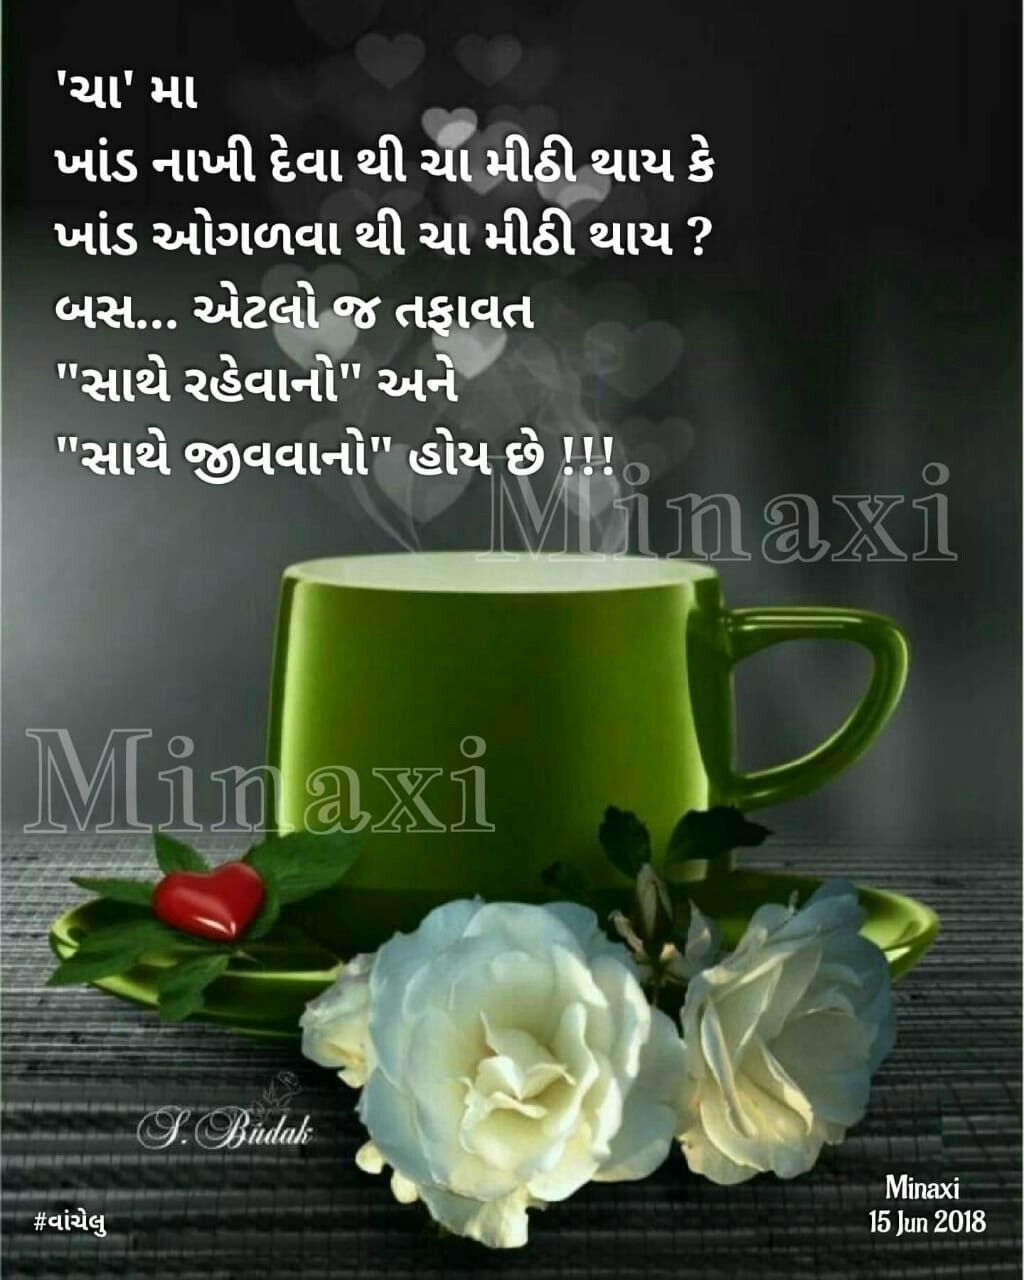 Pin by Narendra soni on Quotes | Gujarati quotes, Amazing quotes ...